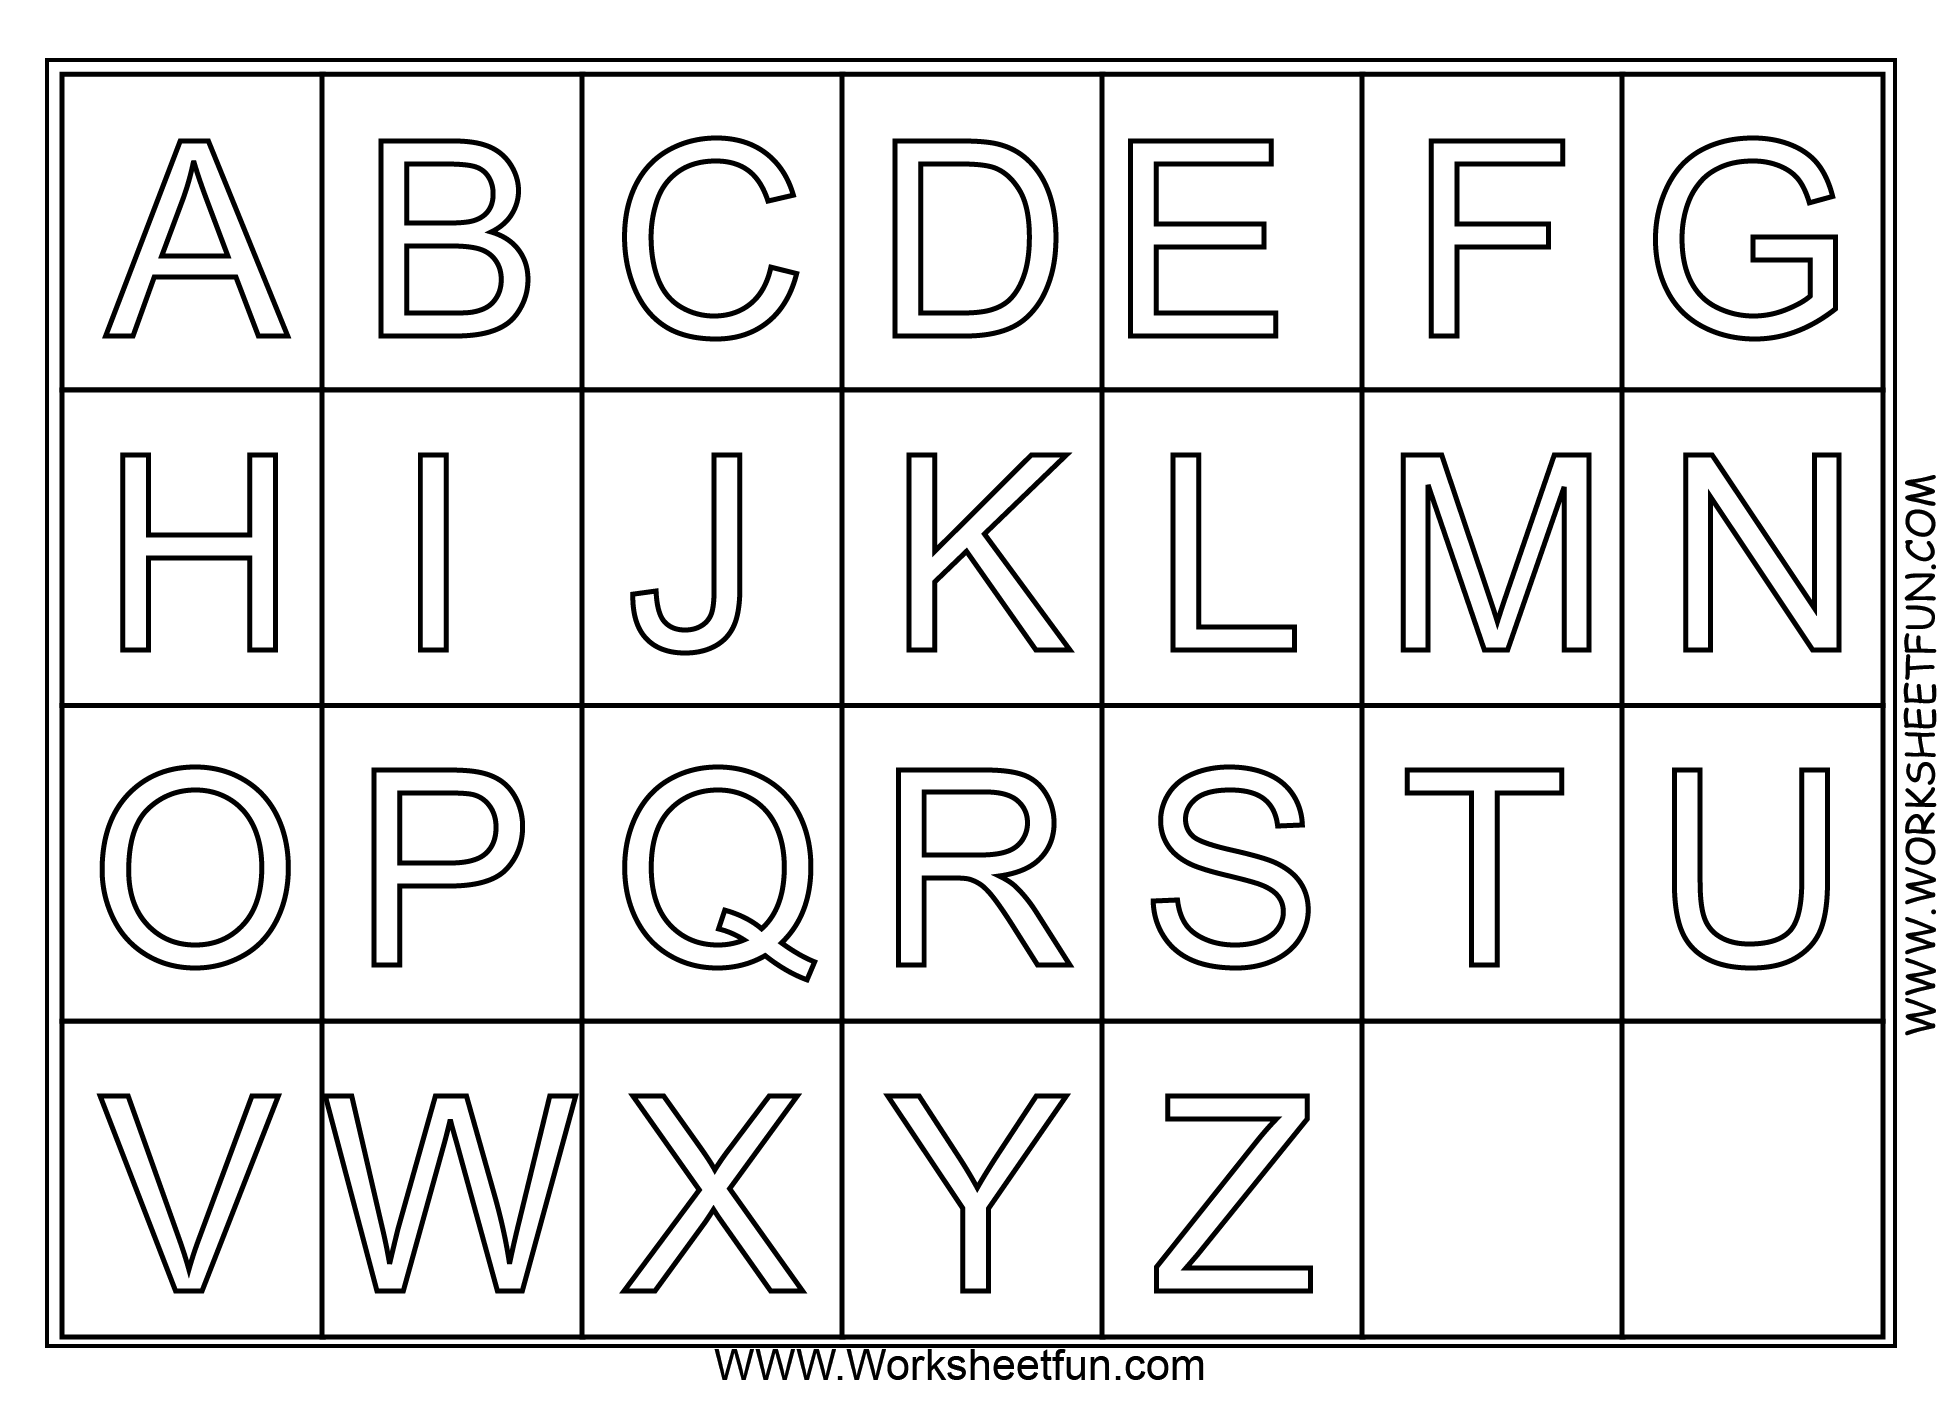 Abc Worksheet Printable abc worksheet printable and printable – Printable Worksheet